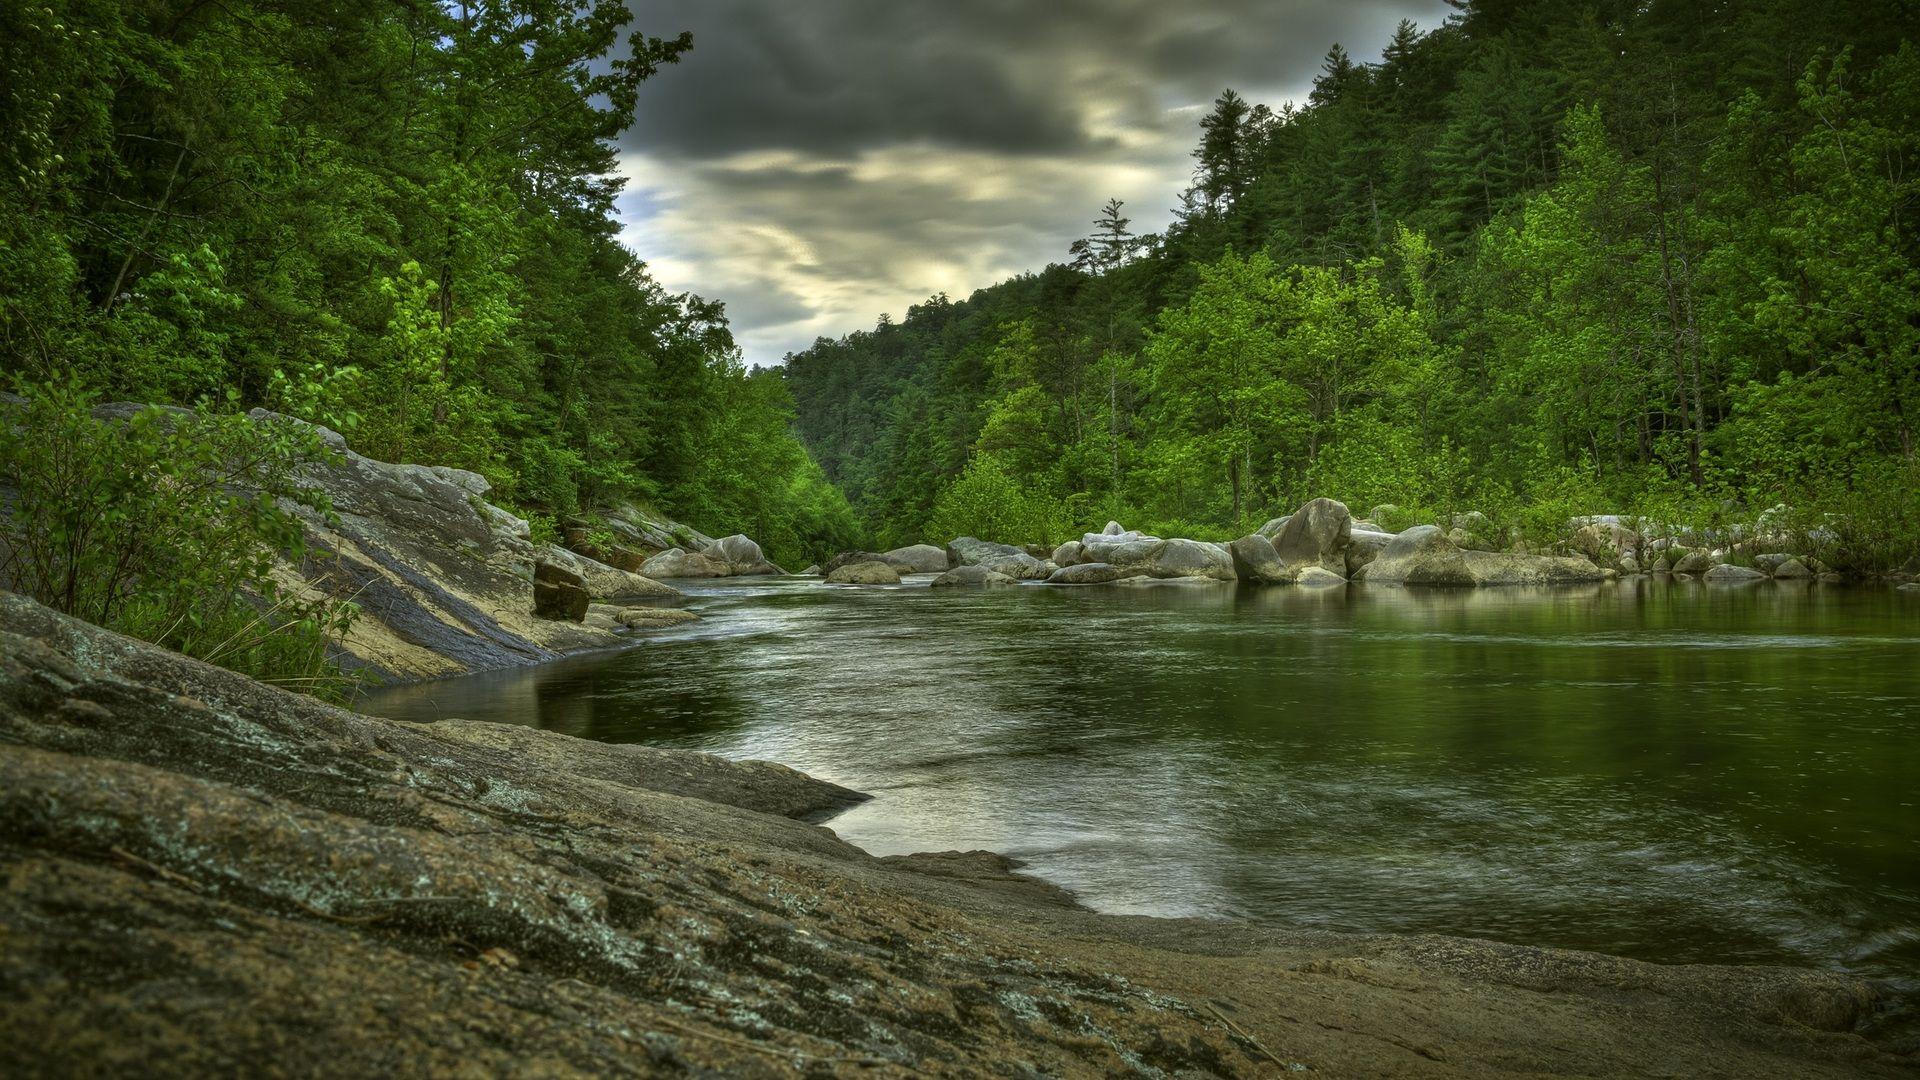 Forest River Hd